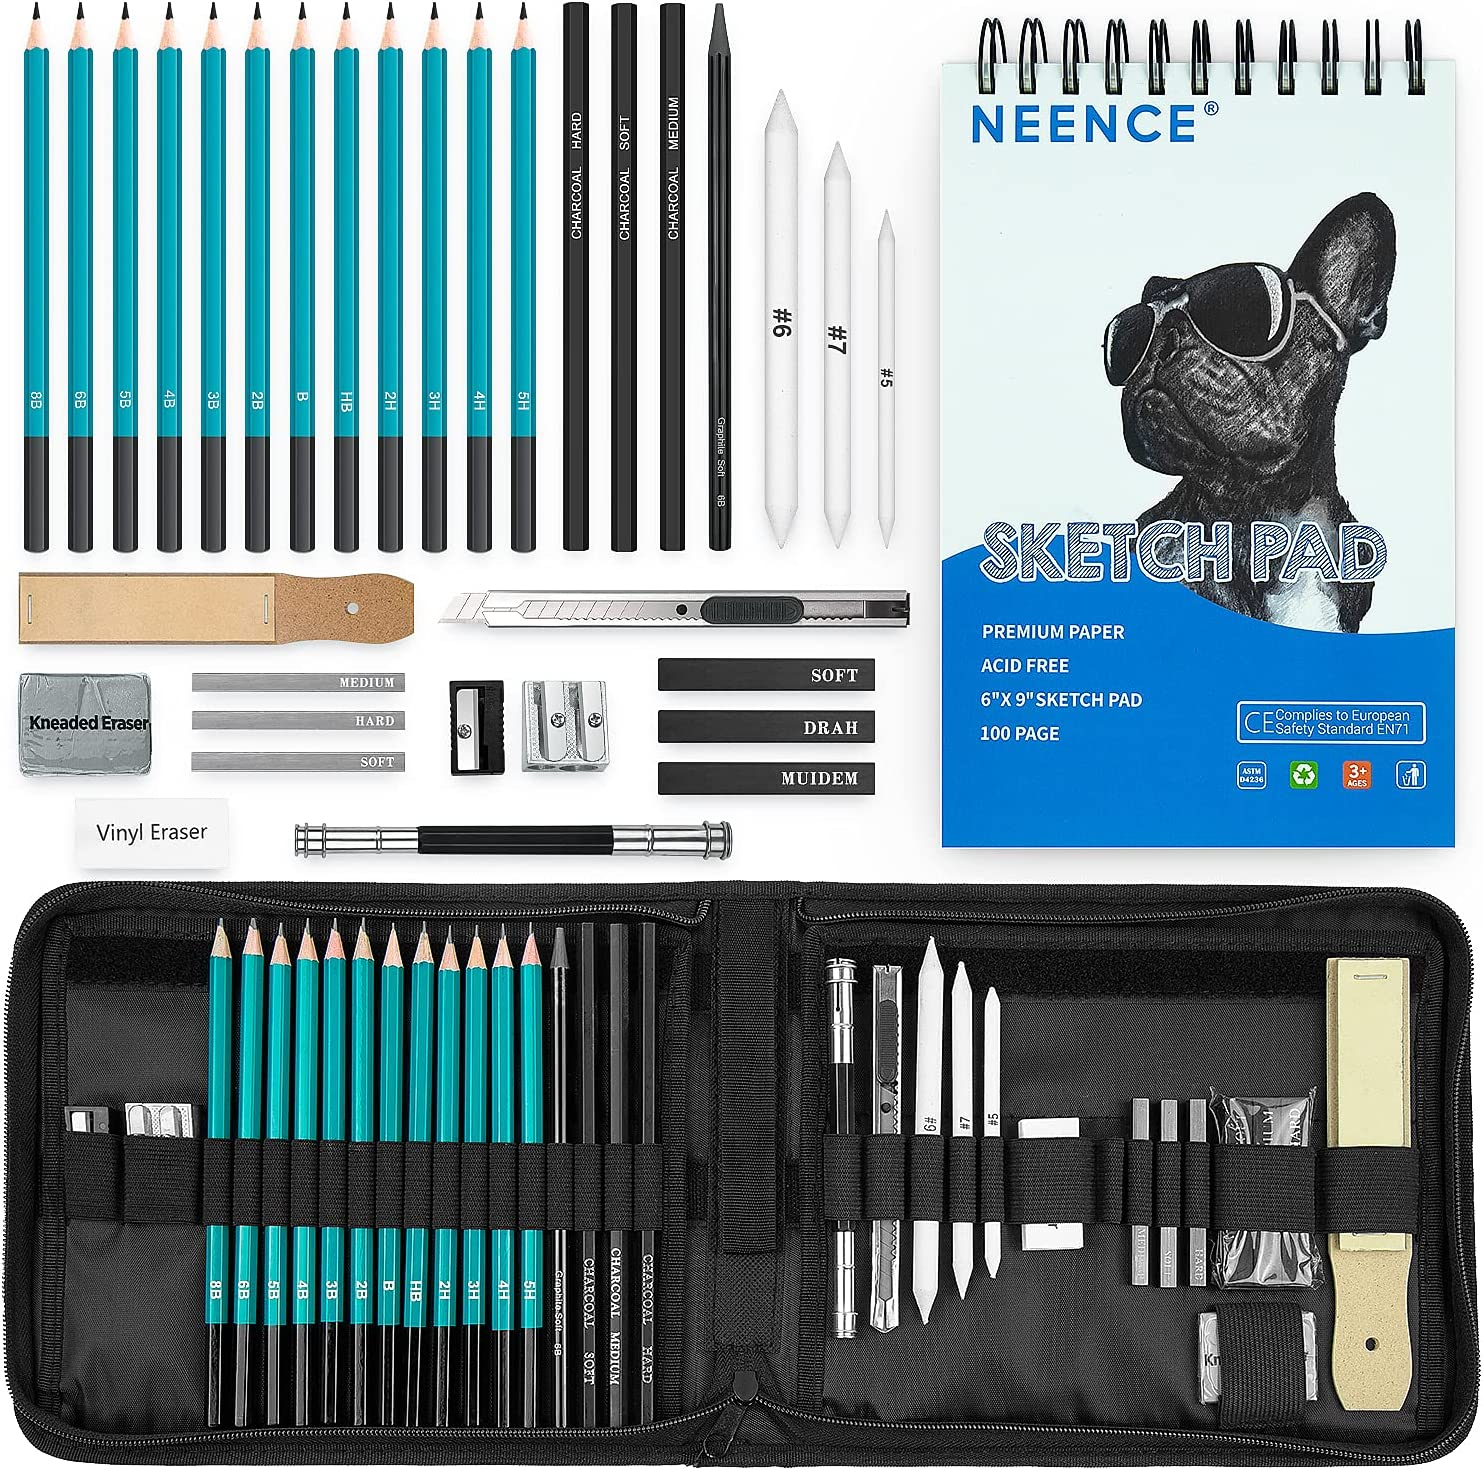 NEENCE Drawing Pencil Set - Sketching, Graphite and Charcoal Pencils Art Kit and Supplies.100 Page Drawing Pad, Kneaded Eraser, Blending Stump. Sketch Pencil for Students Kids Teens and Adults (Green) : Arts, Crafts & Sewing